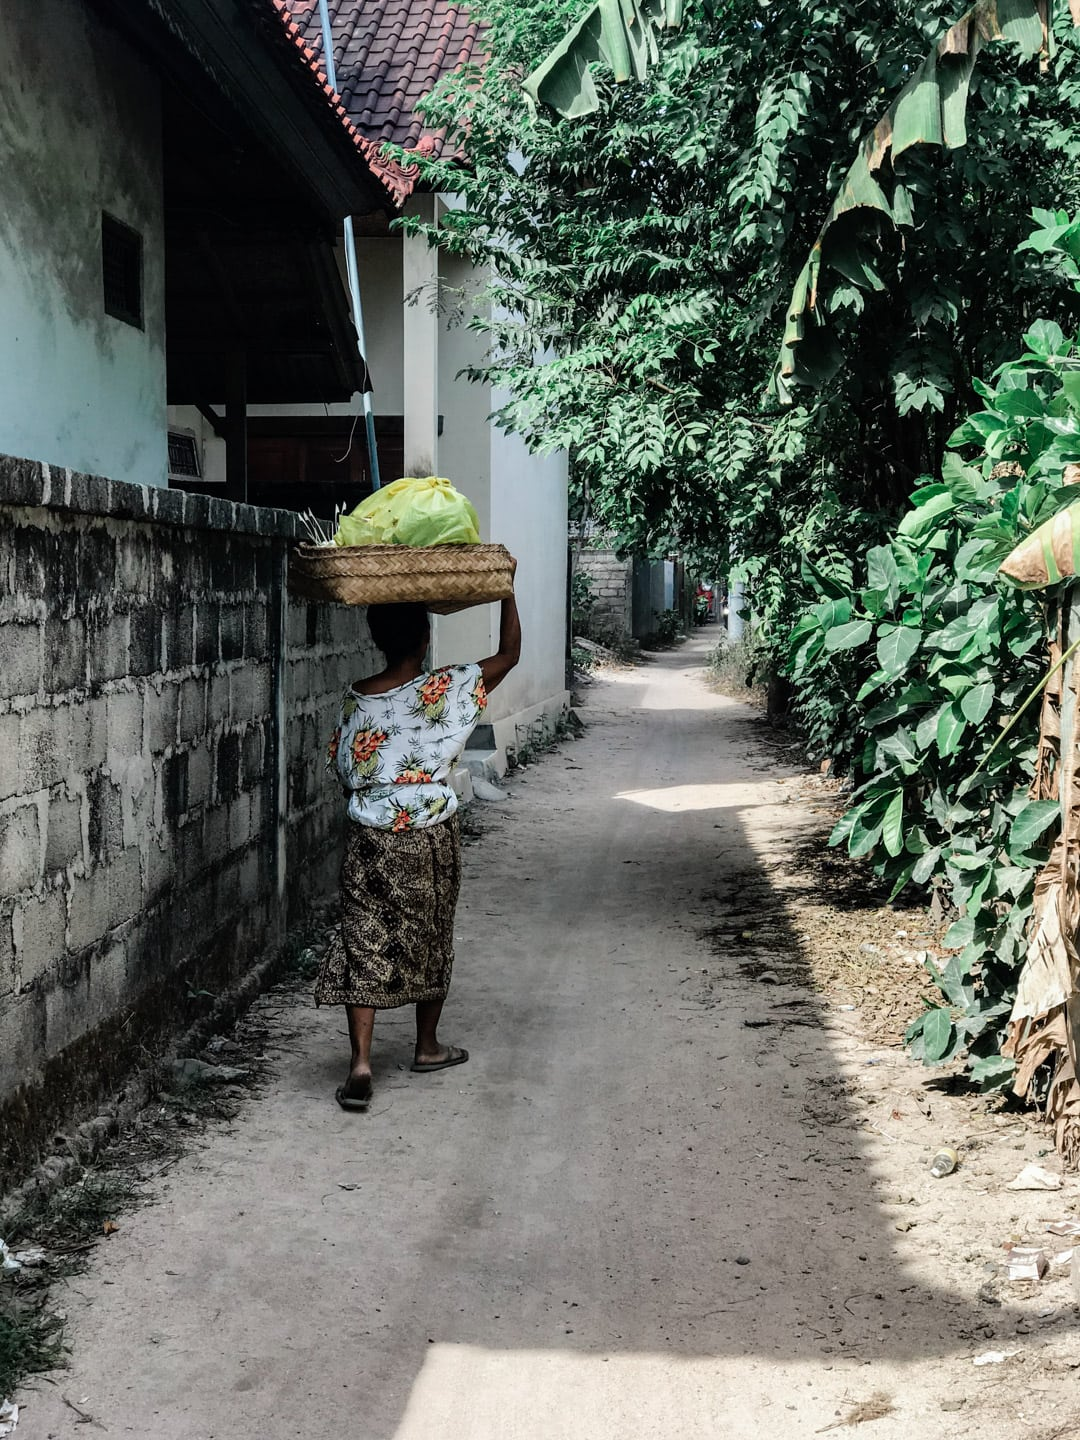 A local Lembongan woman carries a basket her head as she walks down an alley.